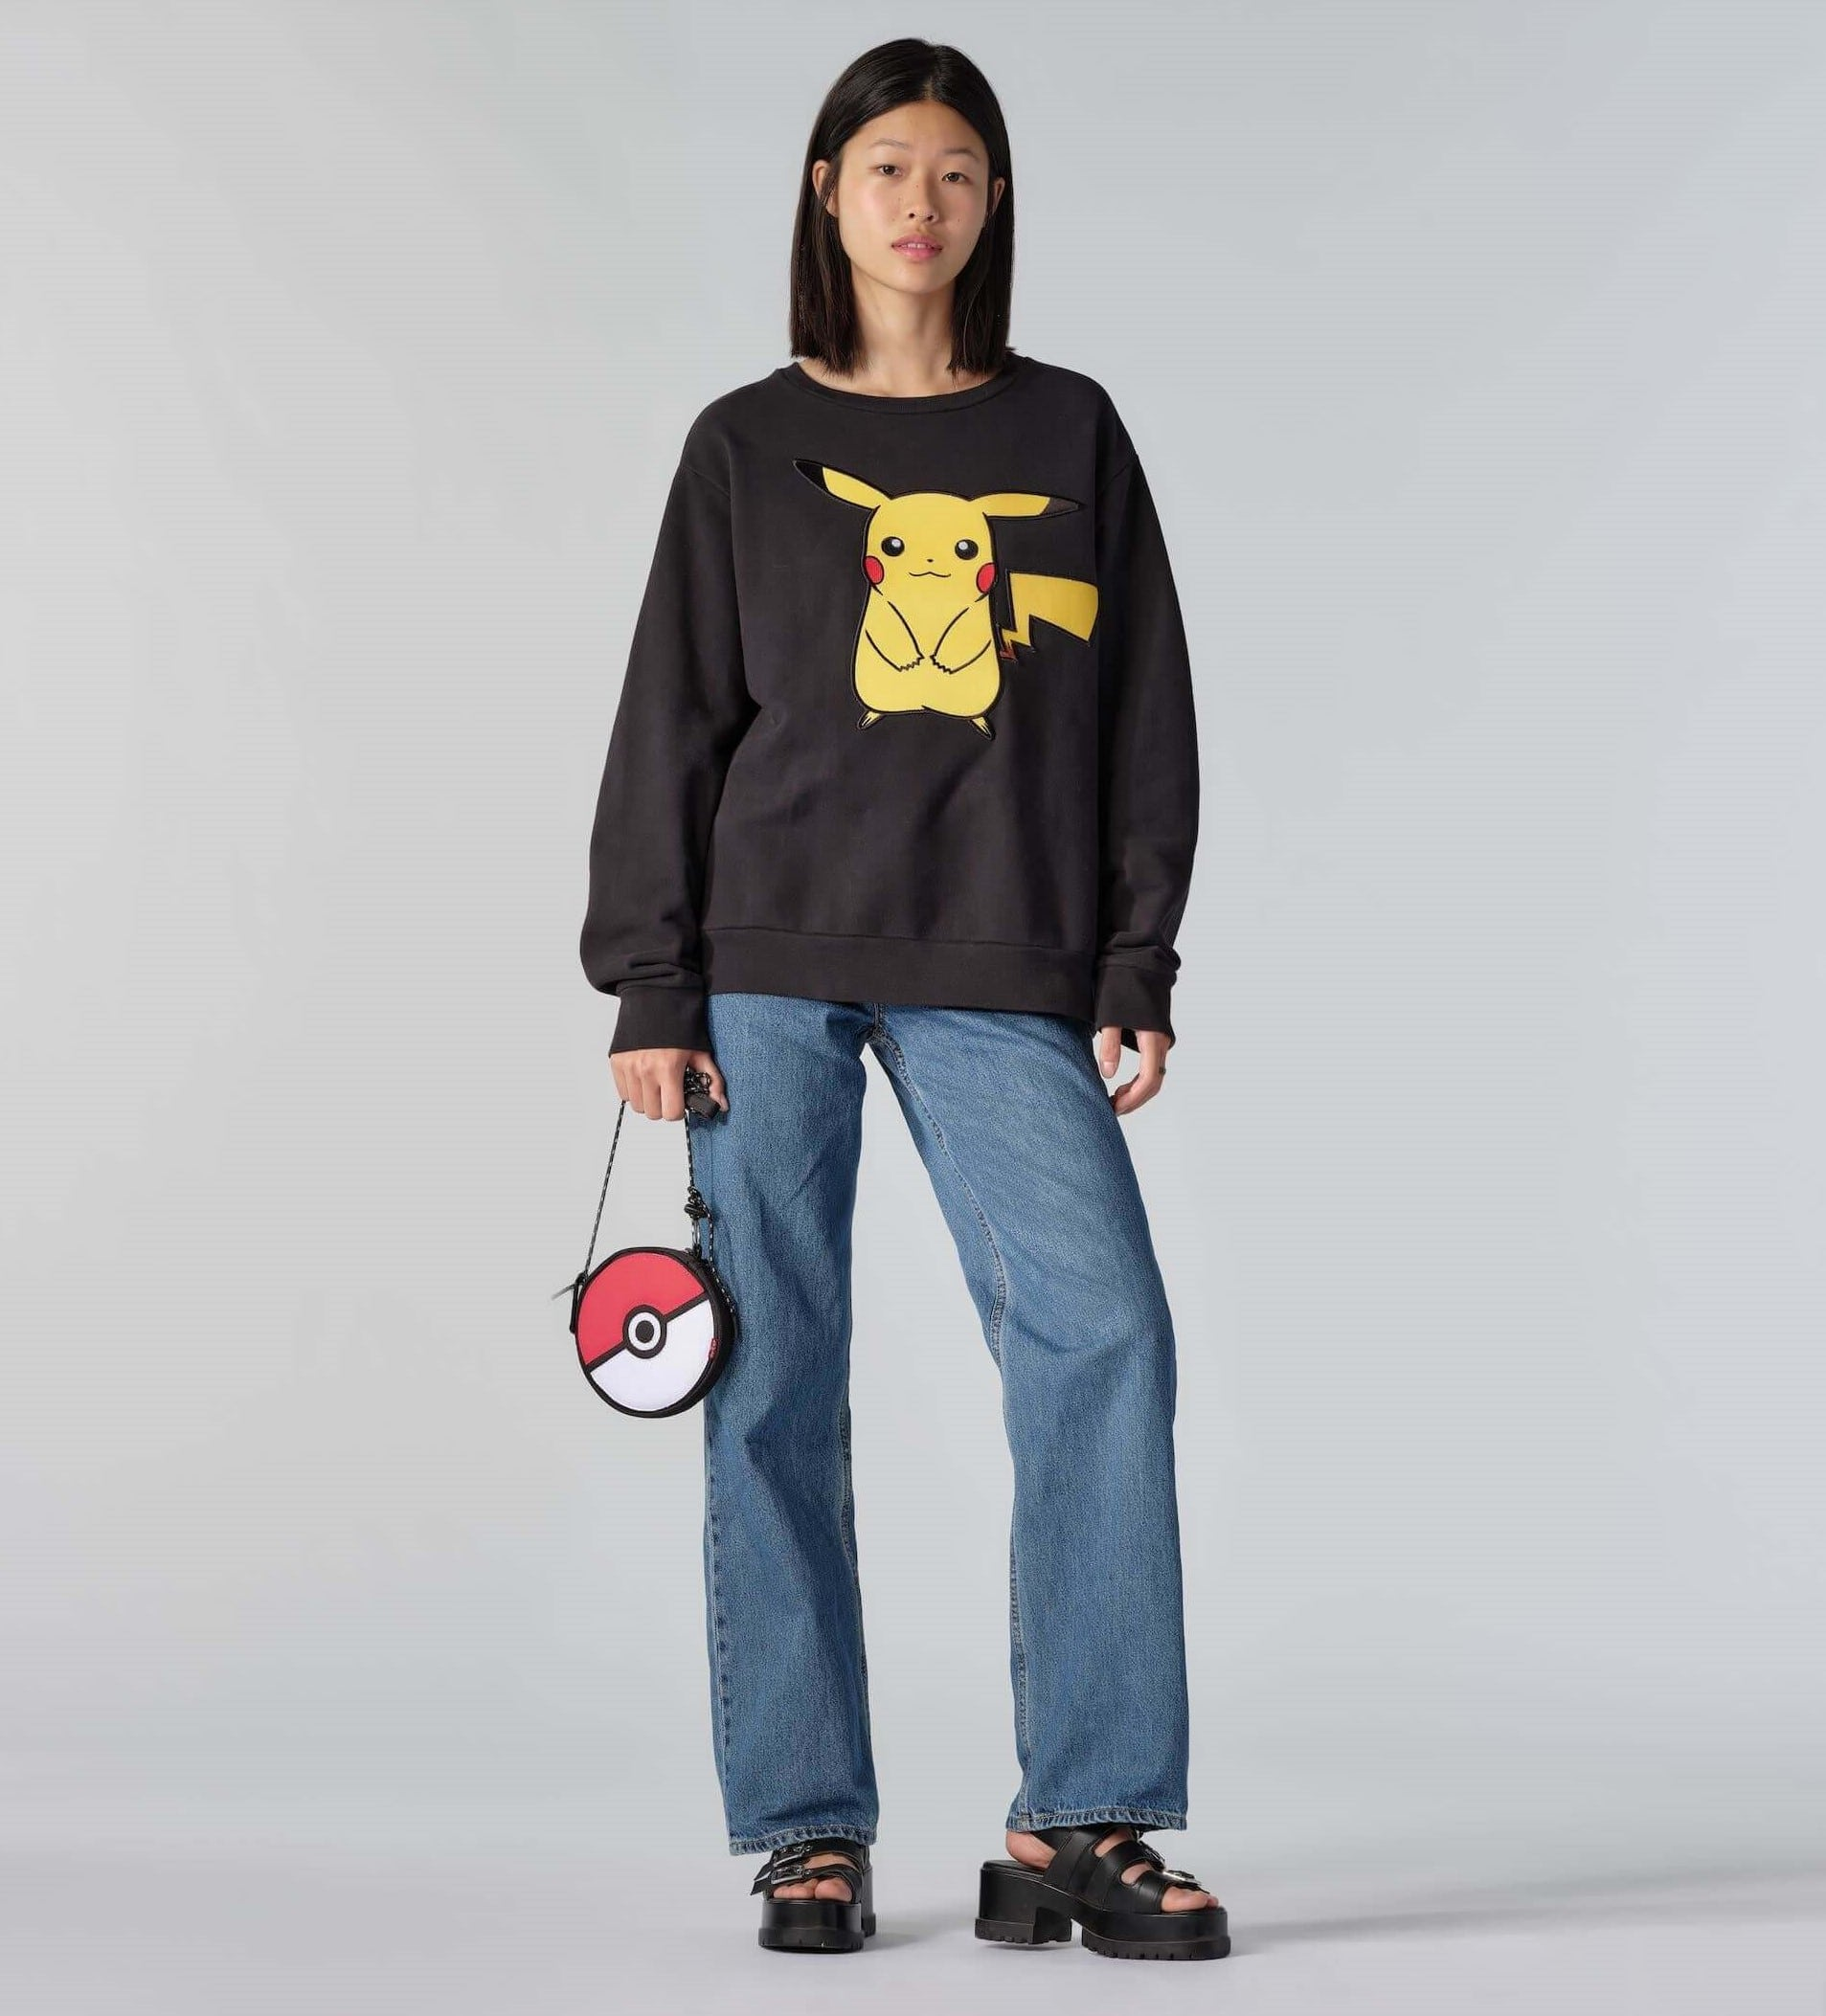 Levi's celebrates Pokémon's 25th anniversary with a '90s-style collection 17